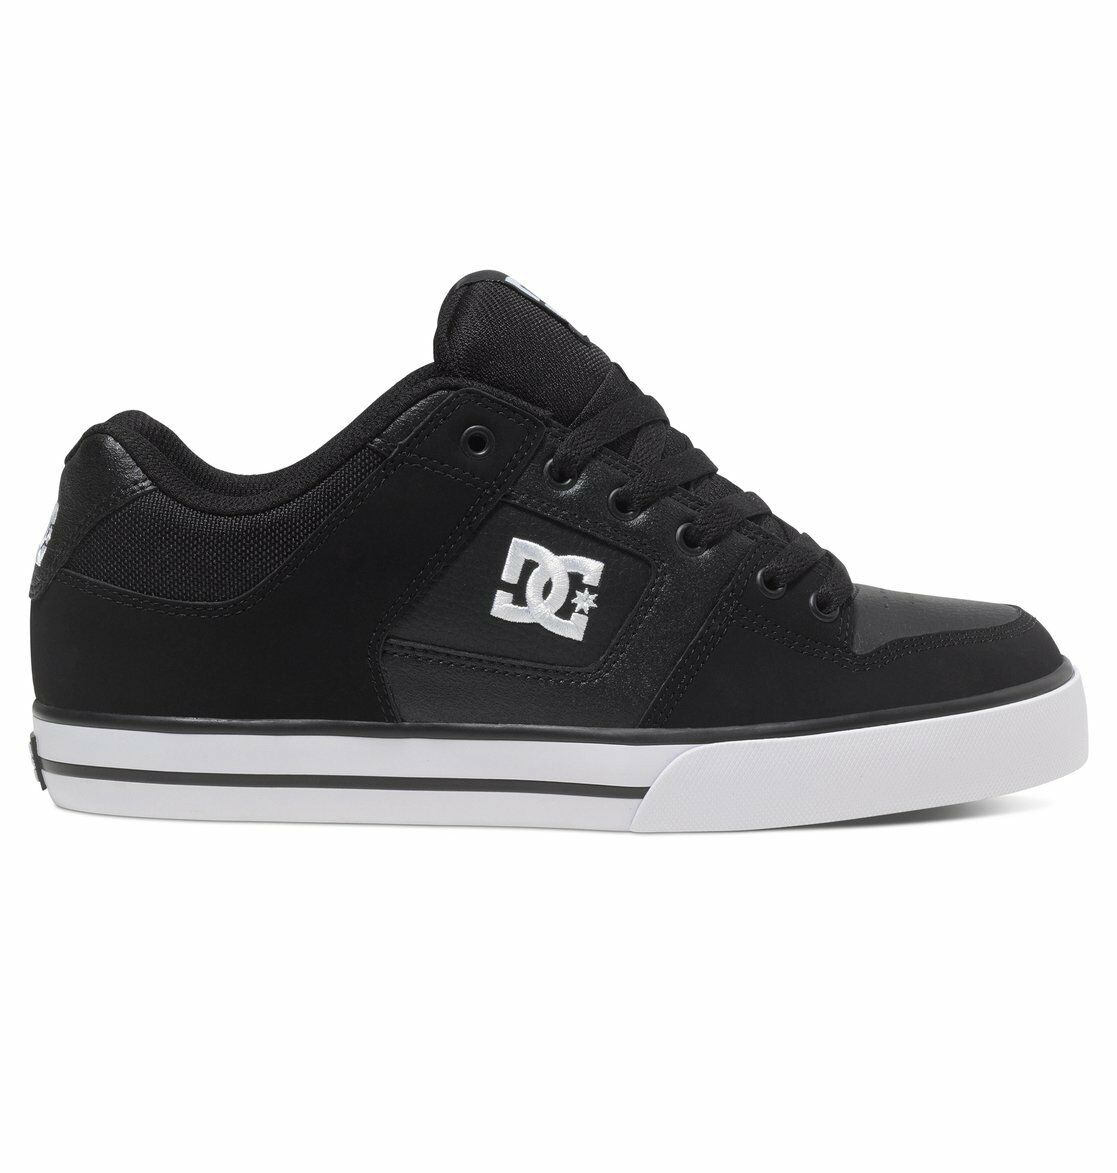 DC PURE FAST BLACK/BLACK/WHITE(BLW) MEN'S Shoes 300660 FAST PURE SHIPPING 3c6d55